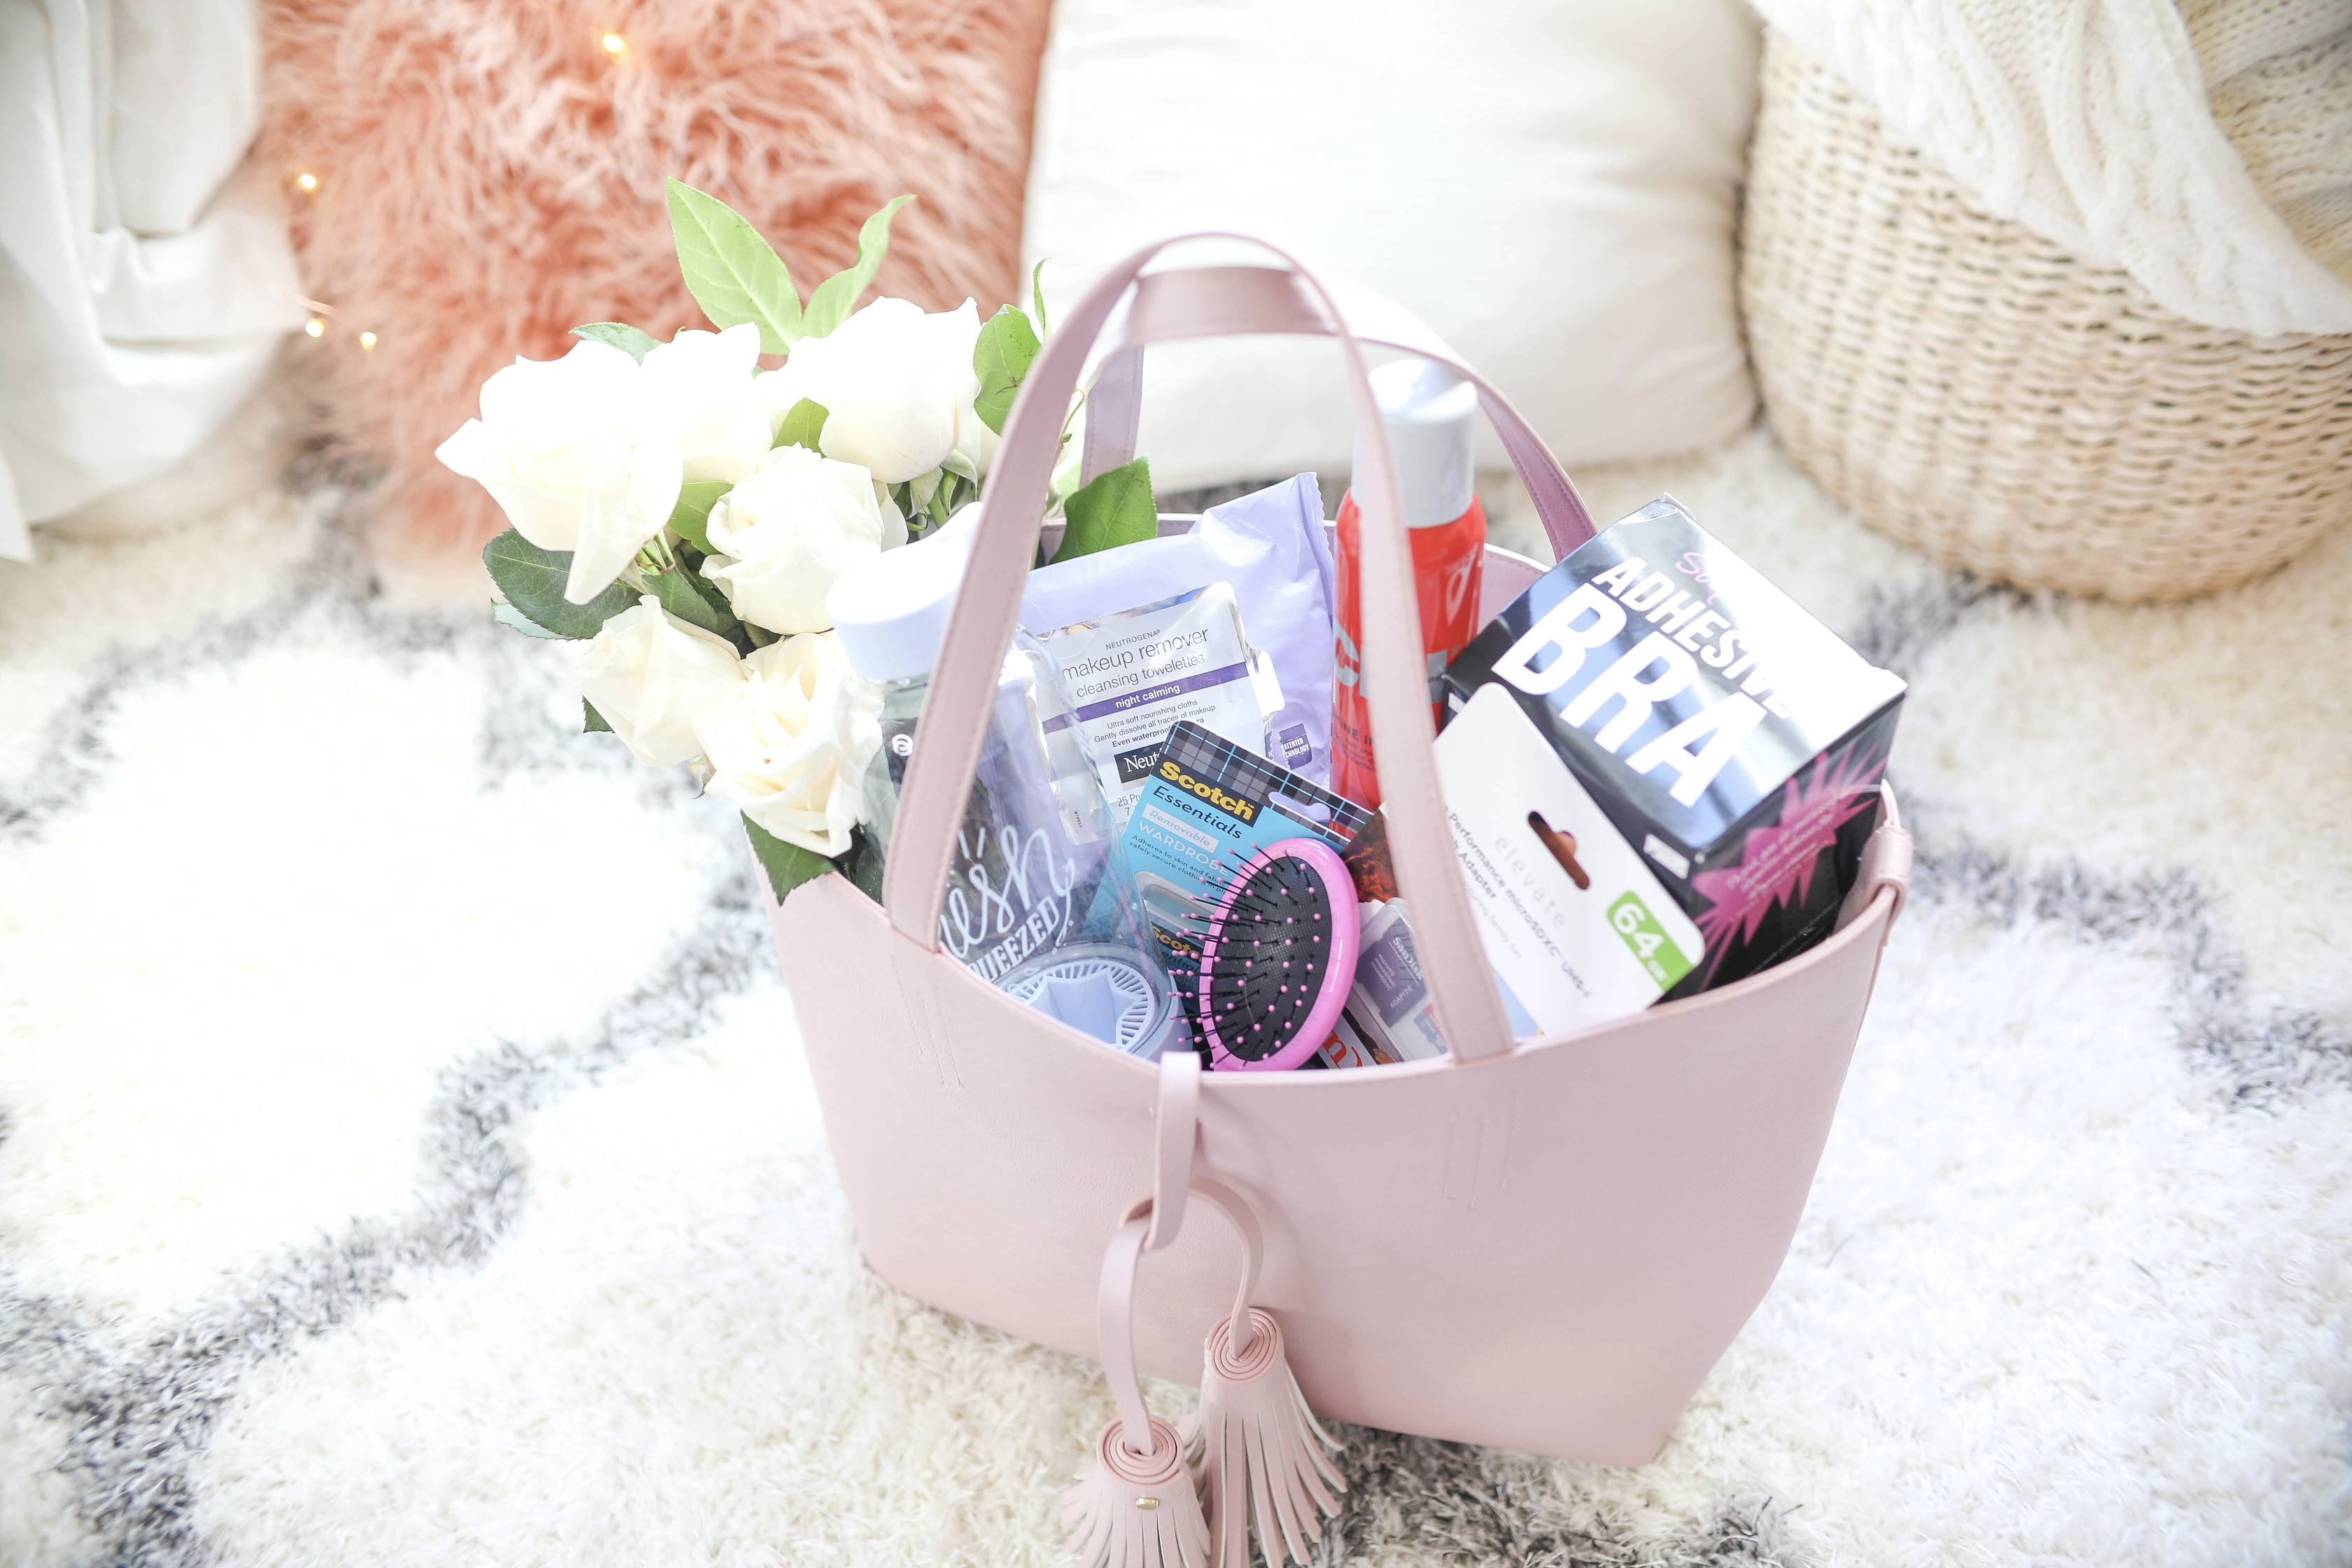 What to bring to a photoshoot or a blog shoot! All the necessities, including extra memory cards, a hair brush, sticky boobs, and more! By Lauren Lindmark on dailydoseofcharm.com daily dose of charm